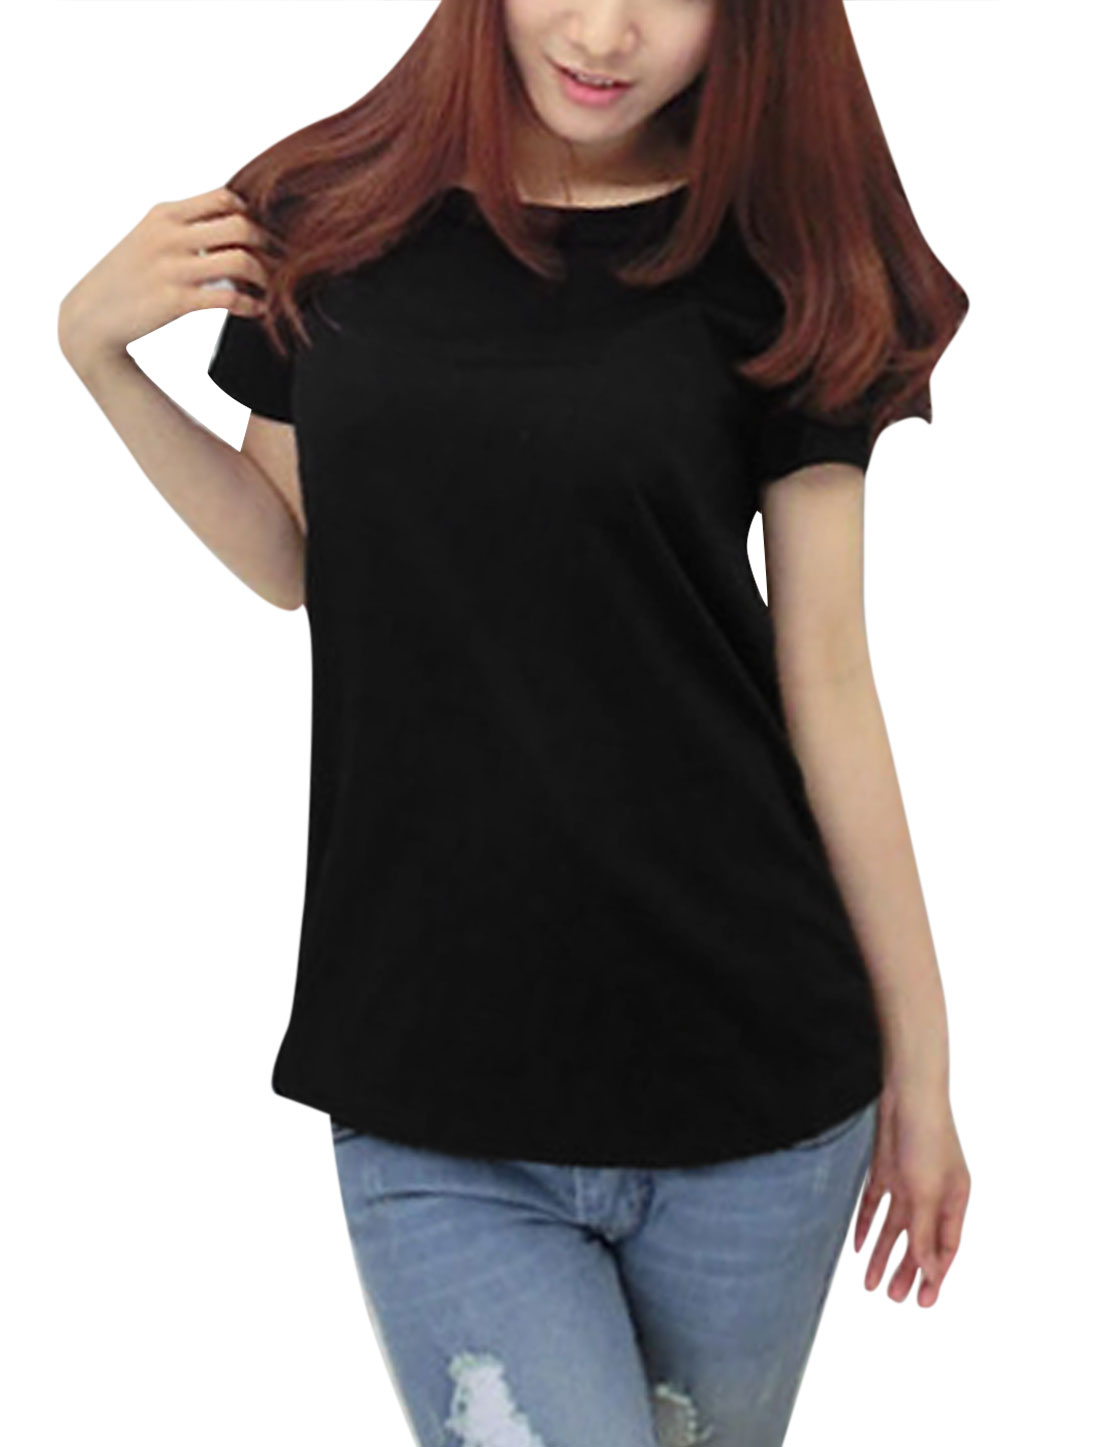 Lady Wing Design Hollow Out Back Fashion Shirt Black M